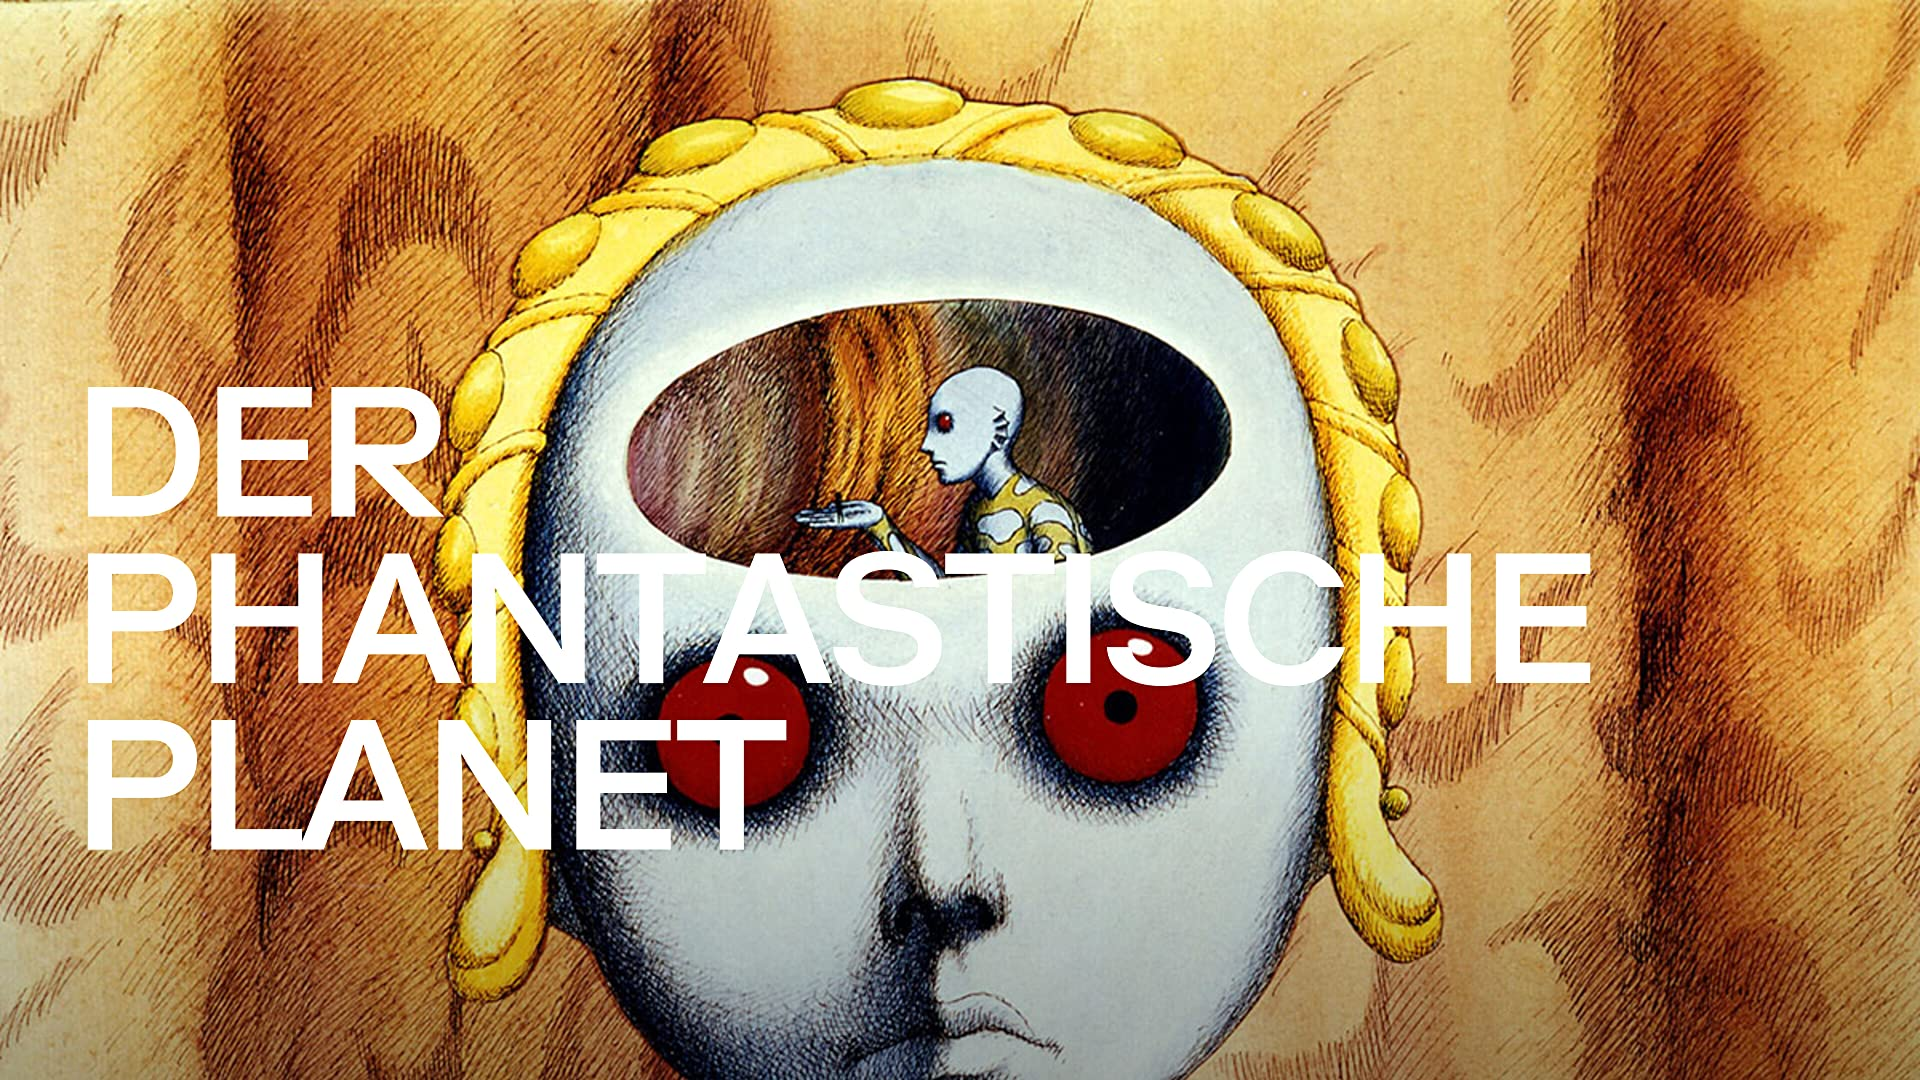 Der phantastische Planet